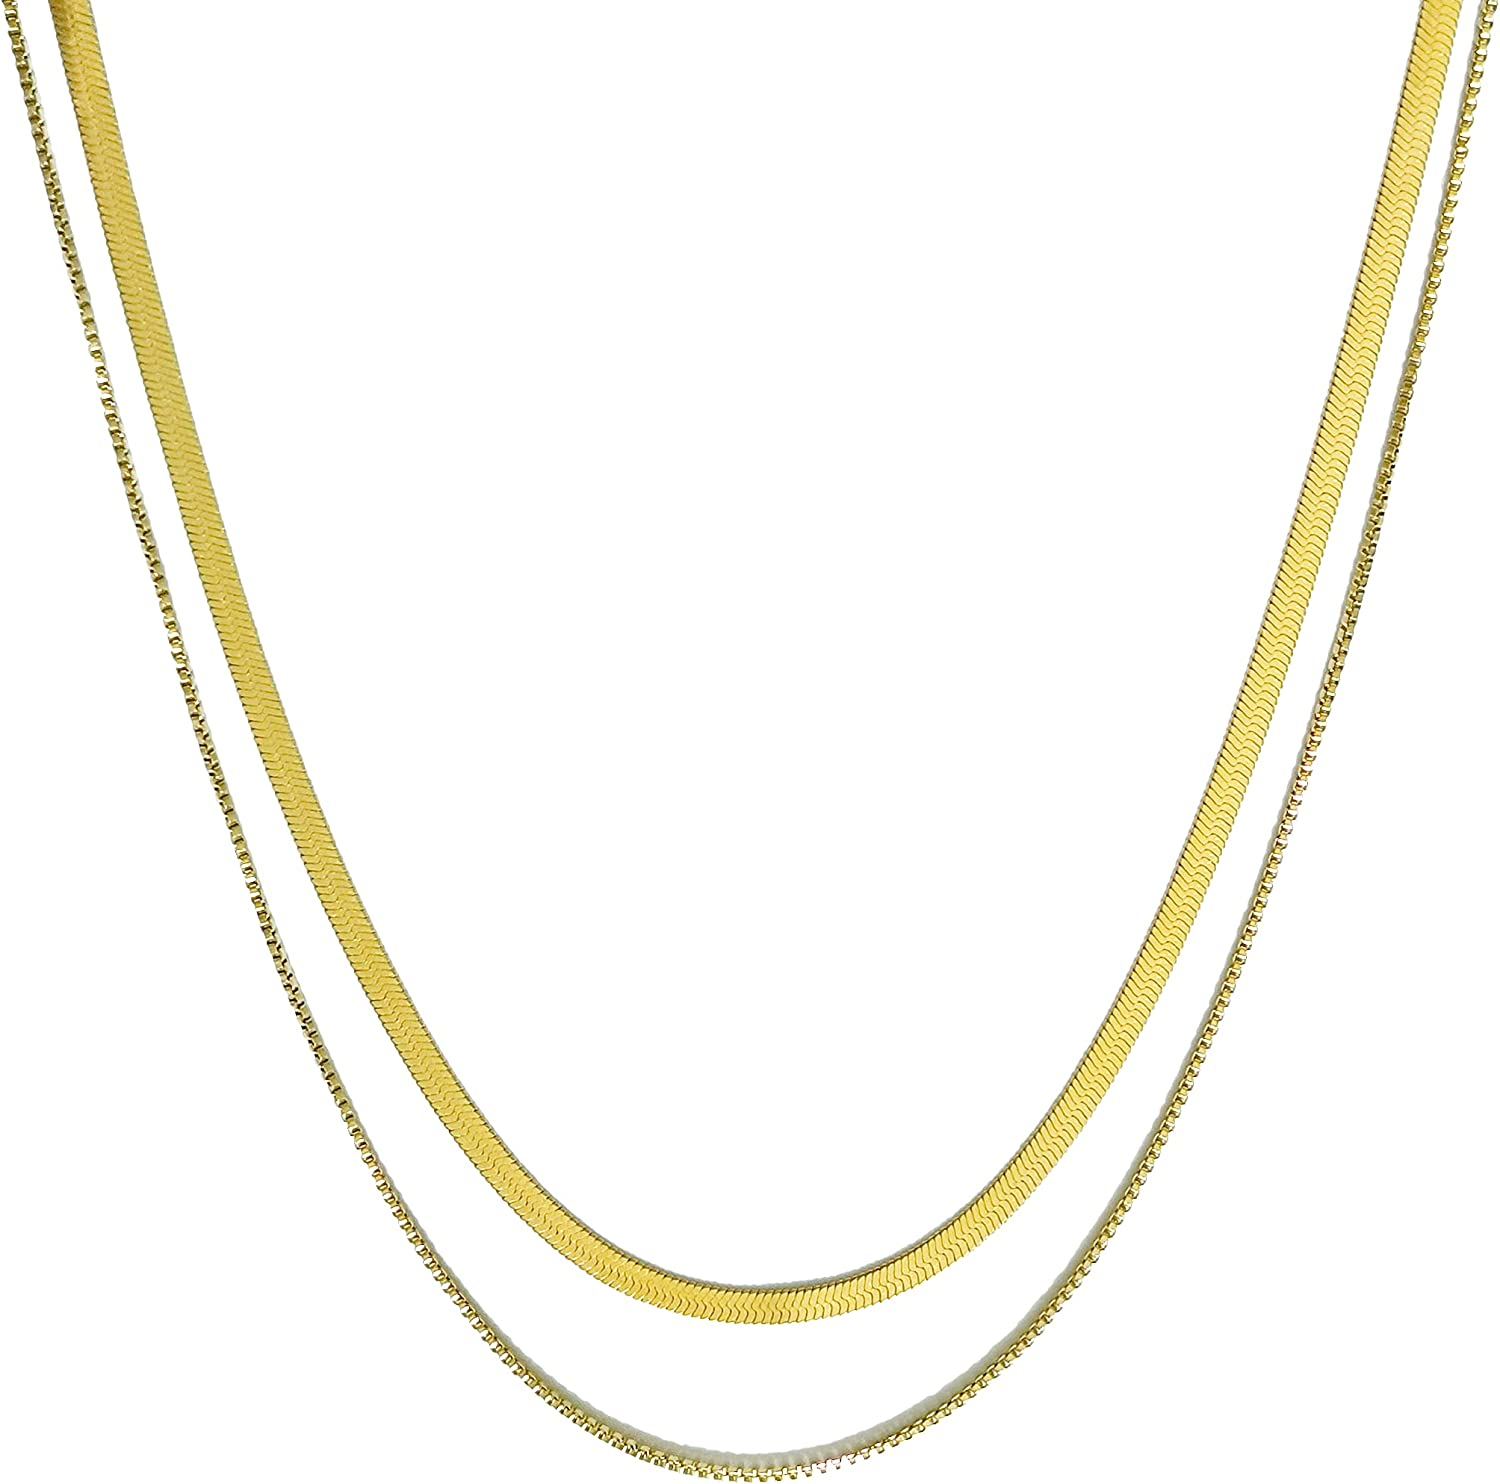 Jean Beau 18K Gold Plated Chain Choker necklace Simple Snake Herringbone Box Necklaces Thick Chunky Twisted Ribbon Rolo Chain Dainty Jewelry Gift for Women&Girls